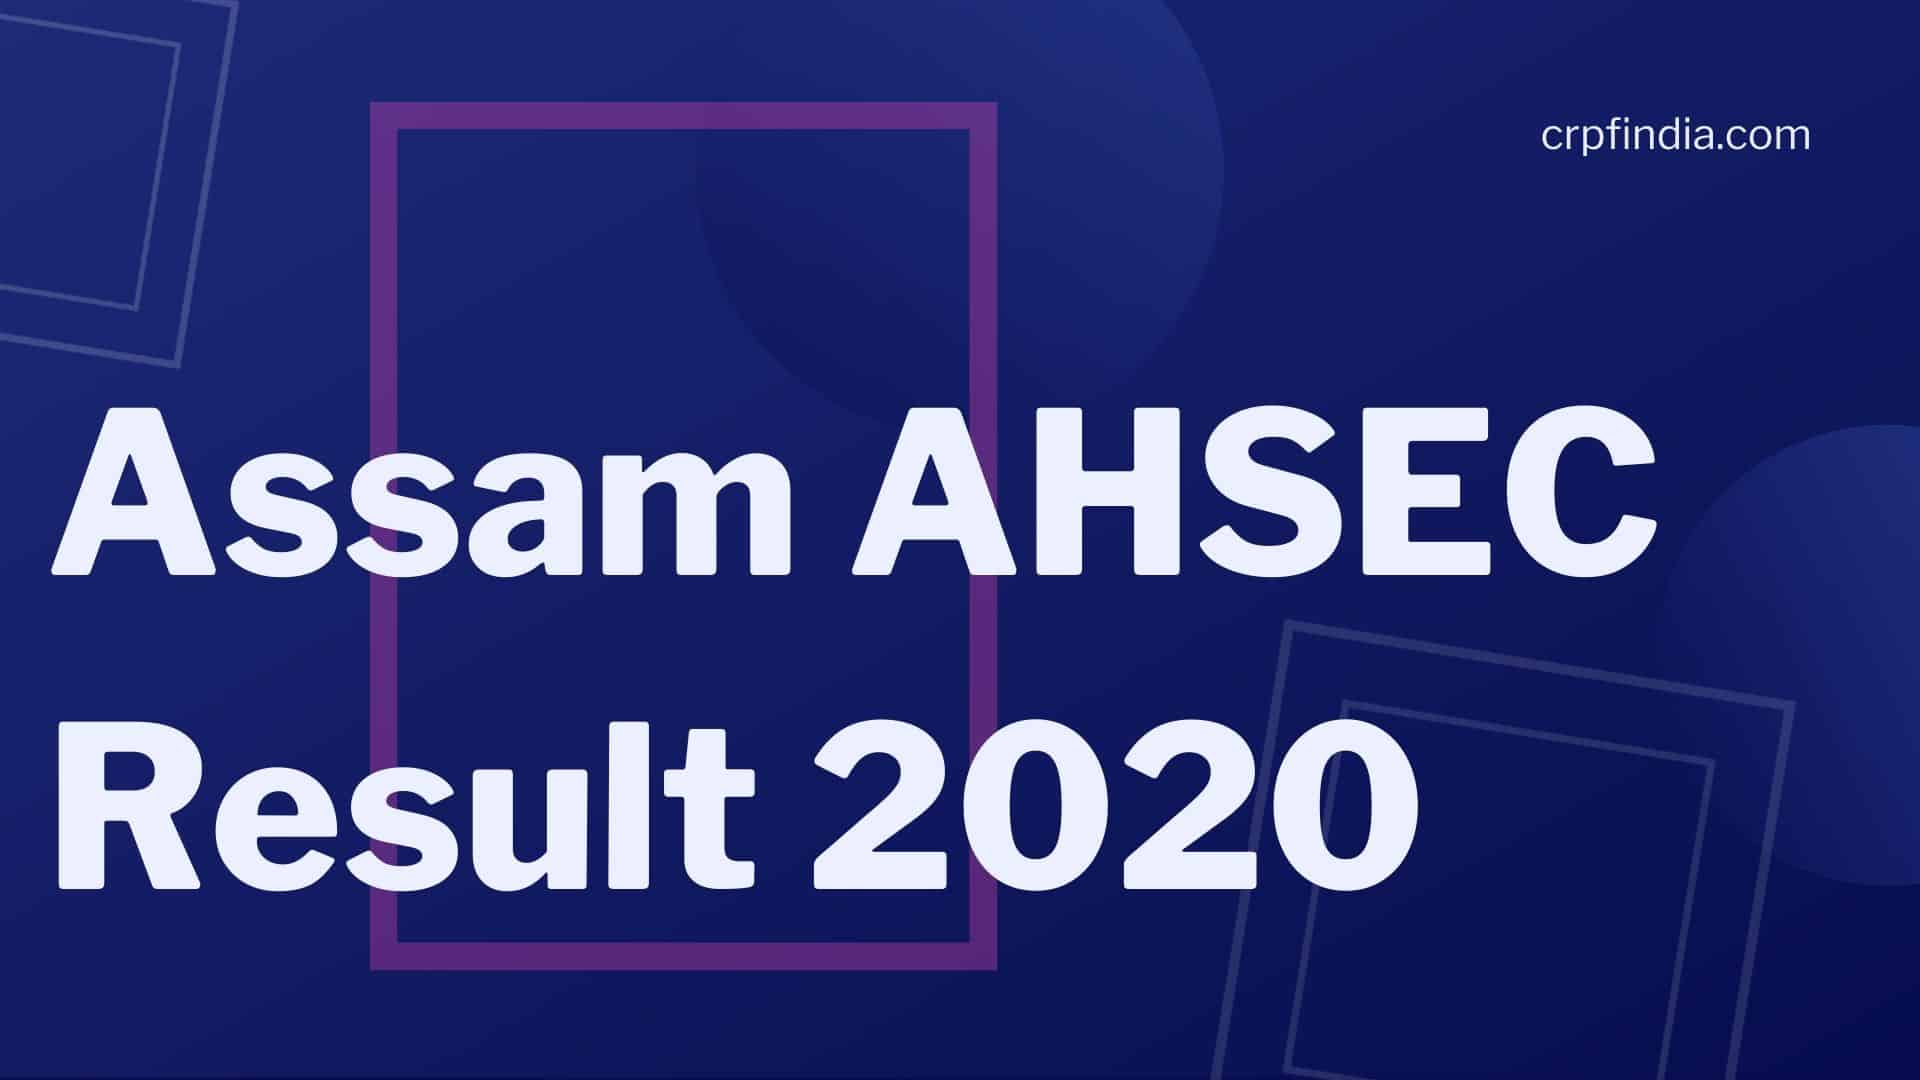 Photo of Assam AHSEC Result 2020 Assam Board 12th Class Exam Result Date